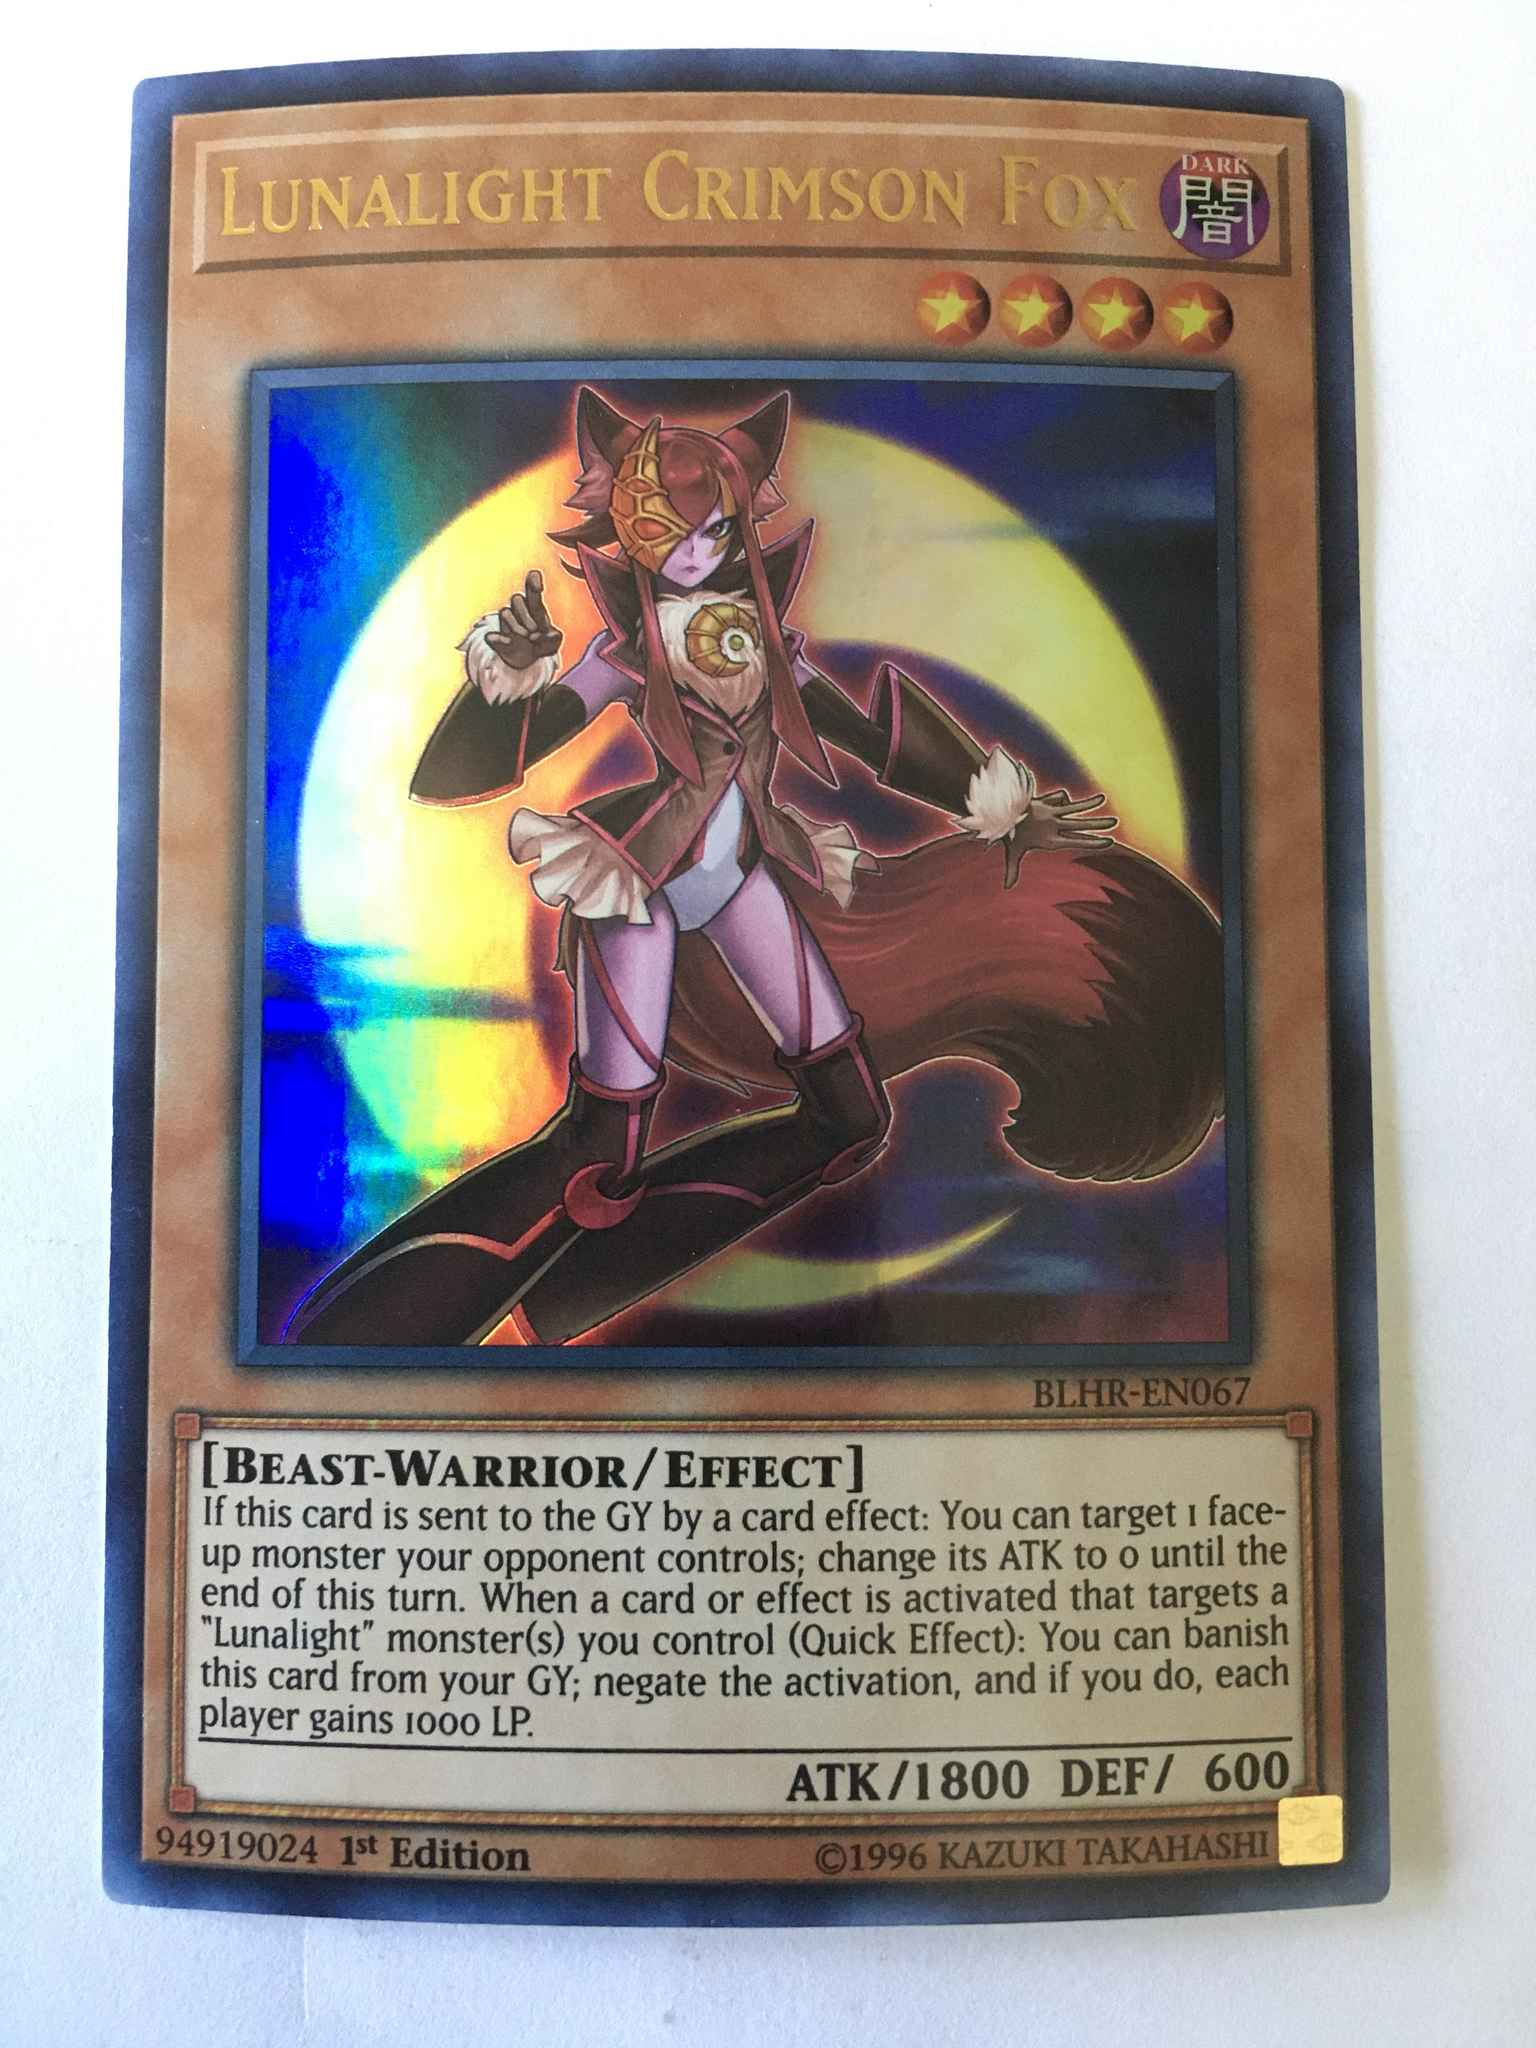 "/""lunalight Crimson Fox/"" blhr-en067 NEAR MINT YUGIOH!! 1 Edition! ULTRA RARE"